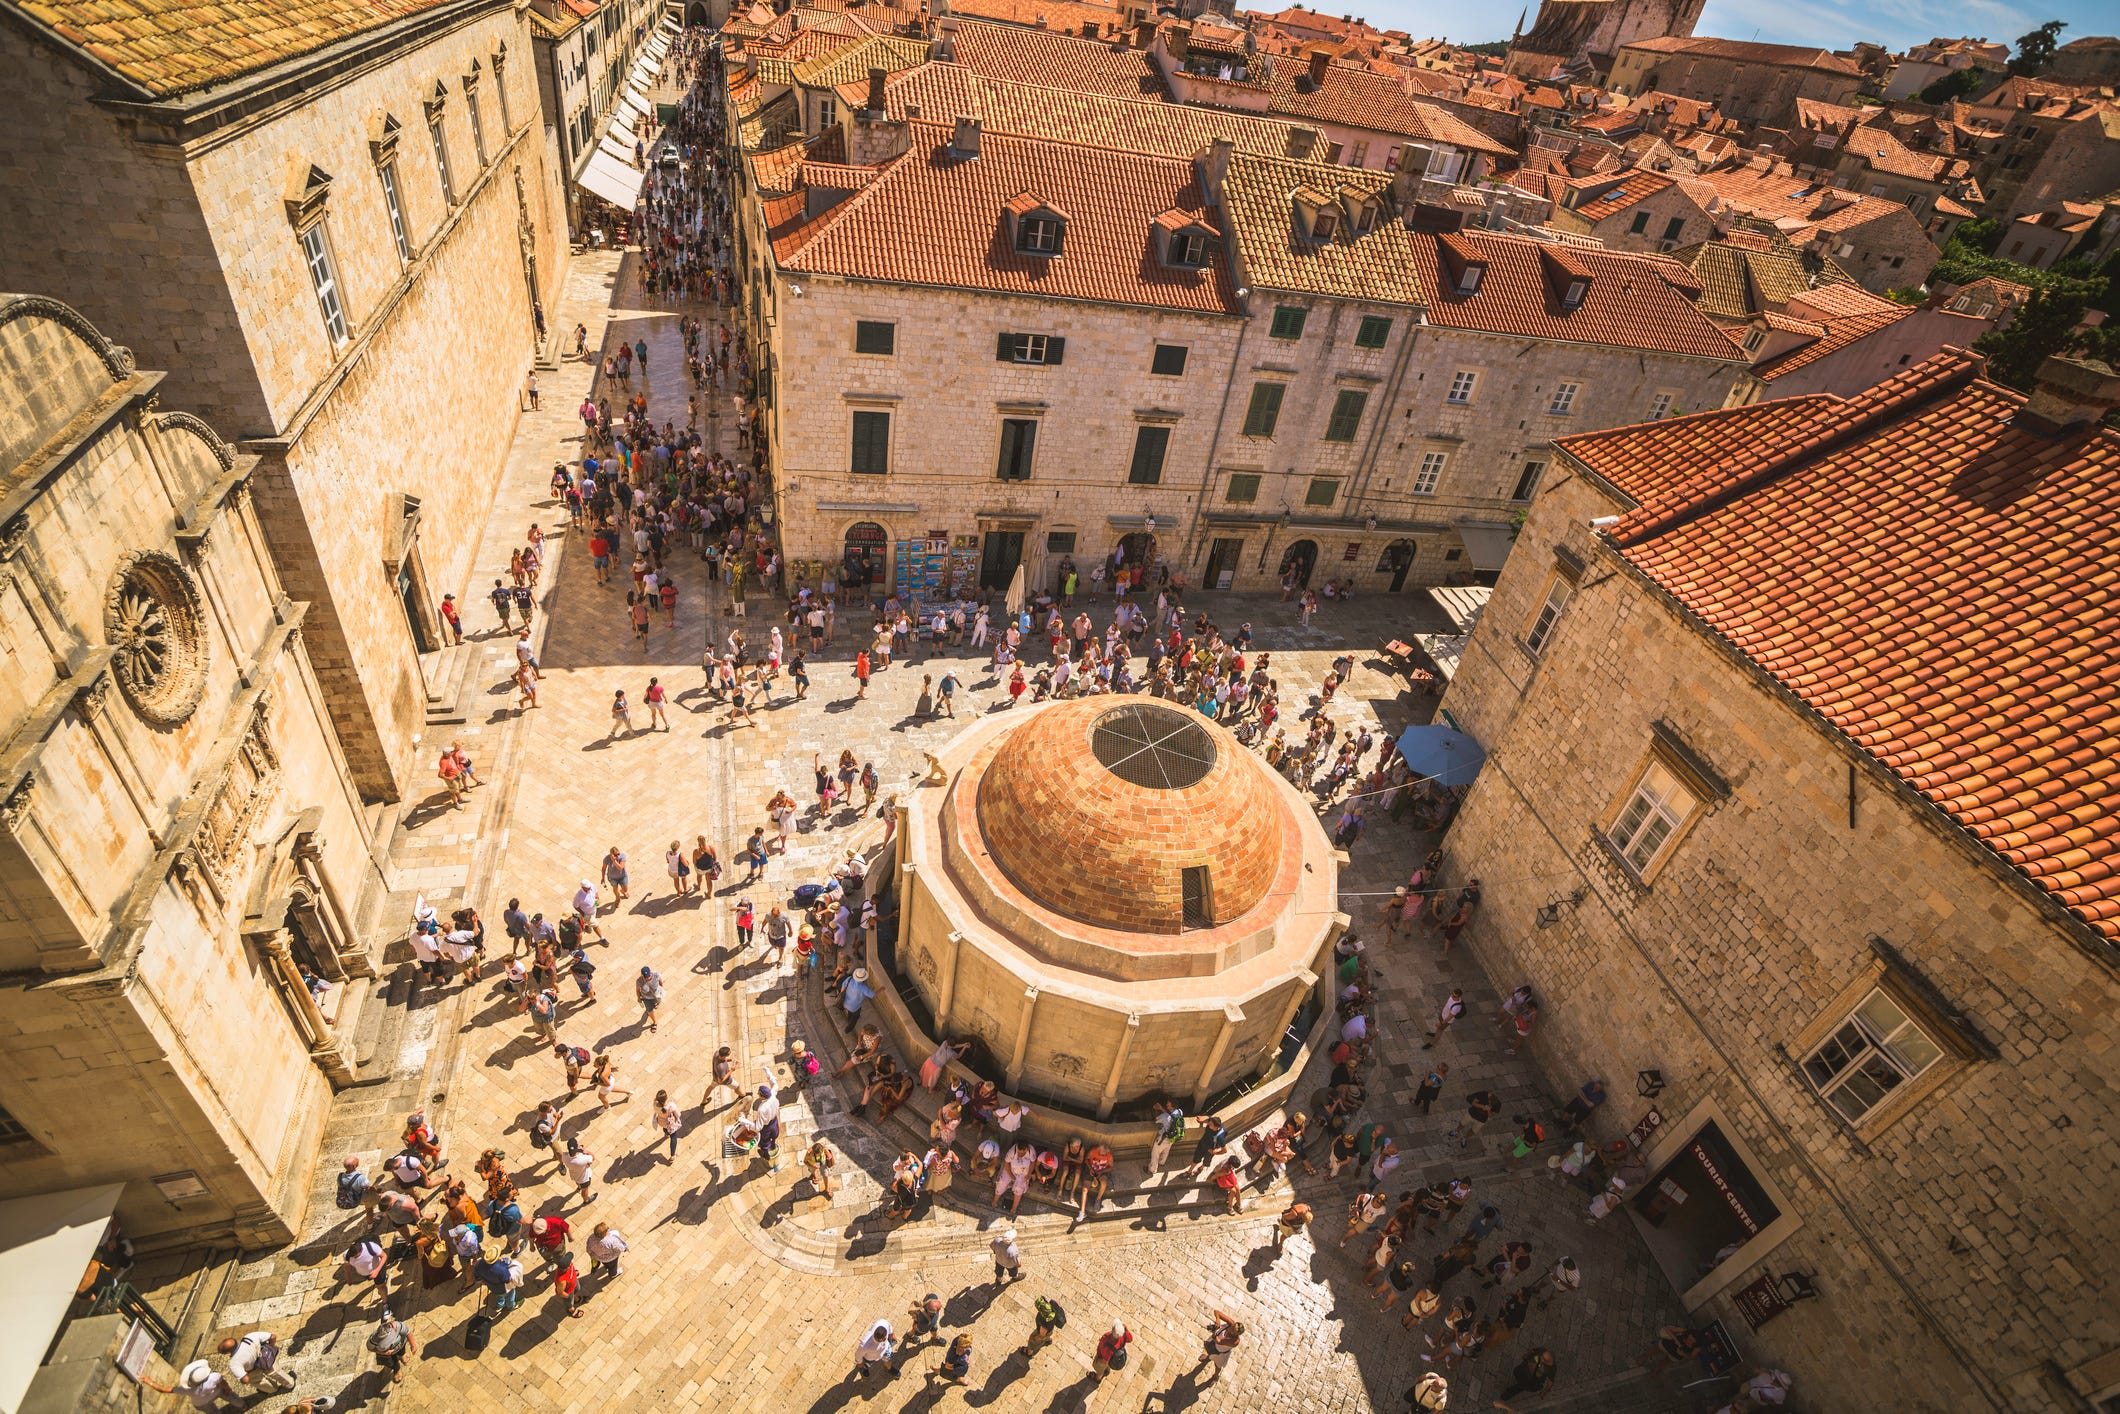 Croatia's 'Game of Thrones' town threatened by mass tourism   USA Today